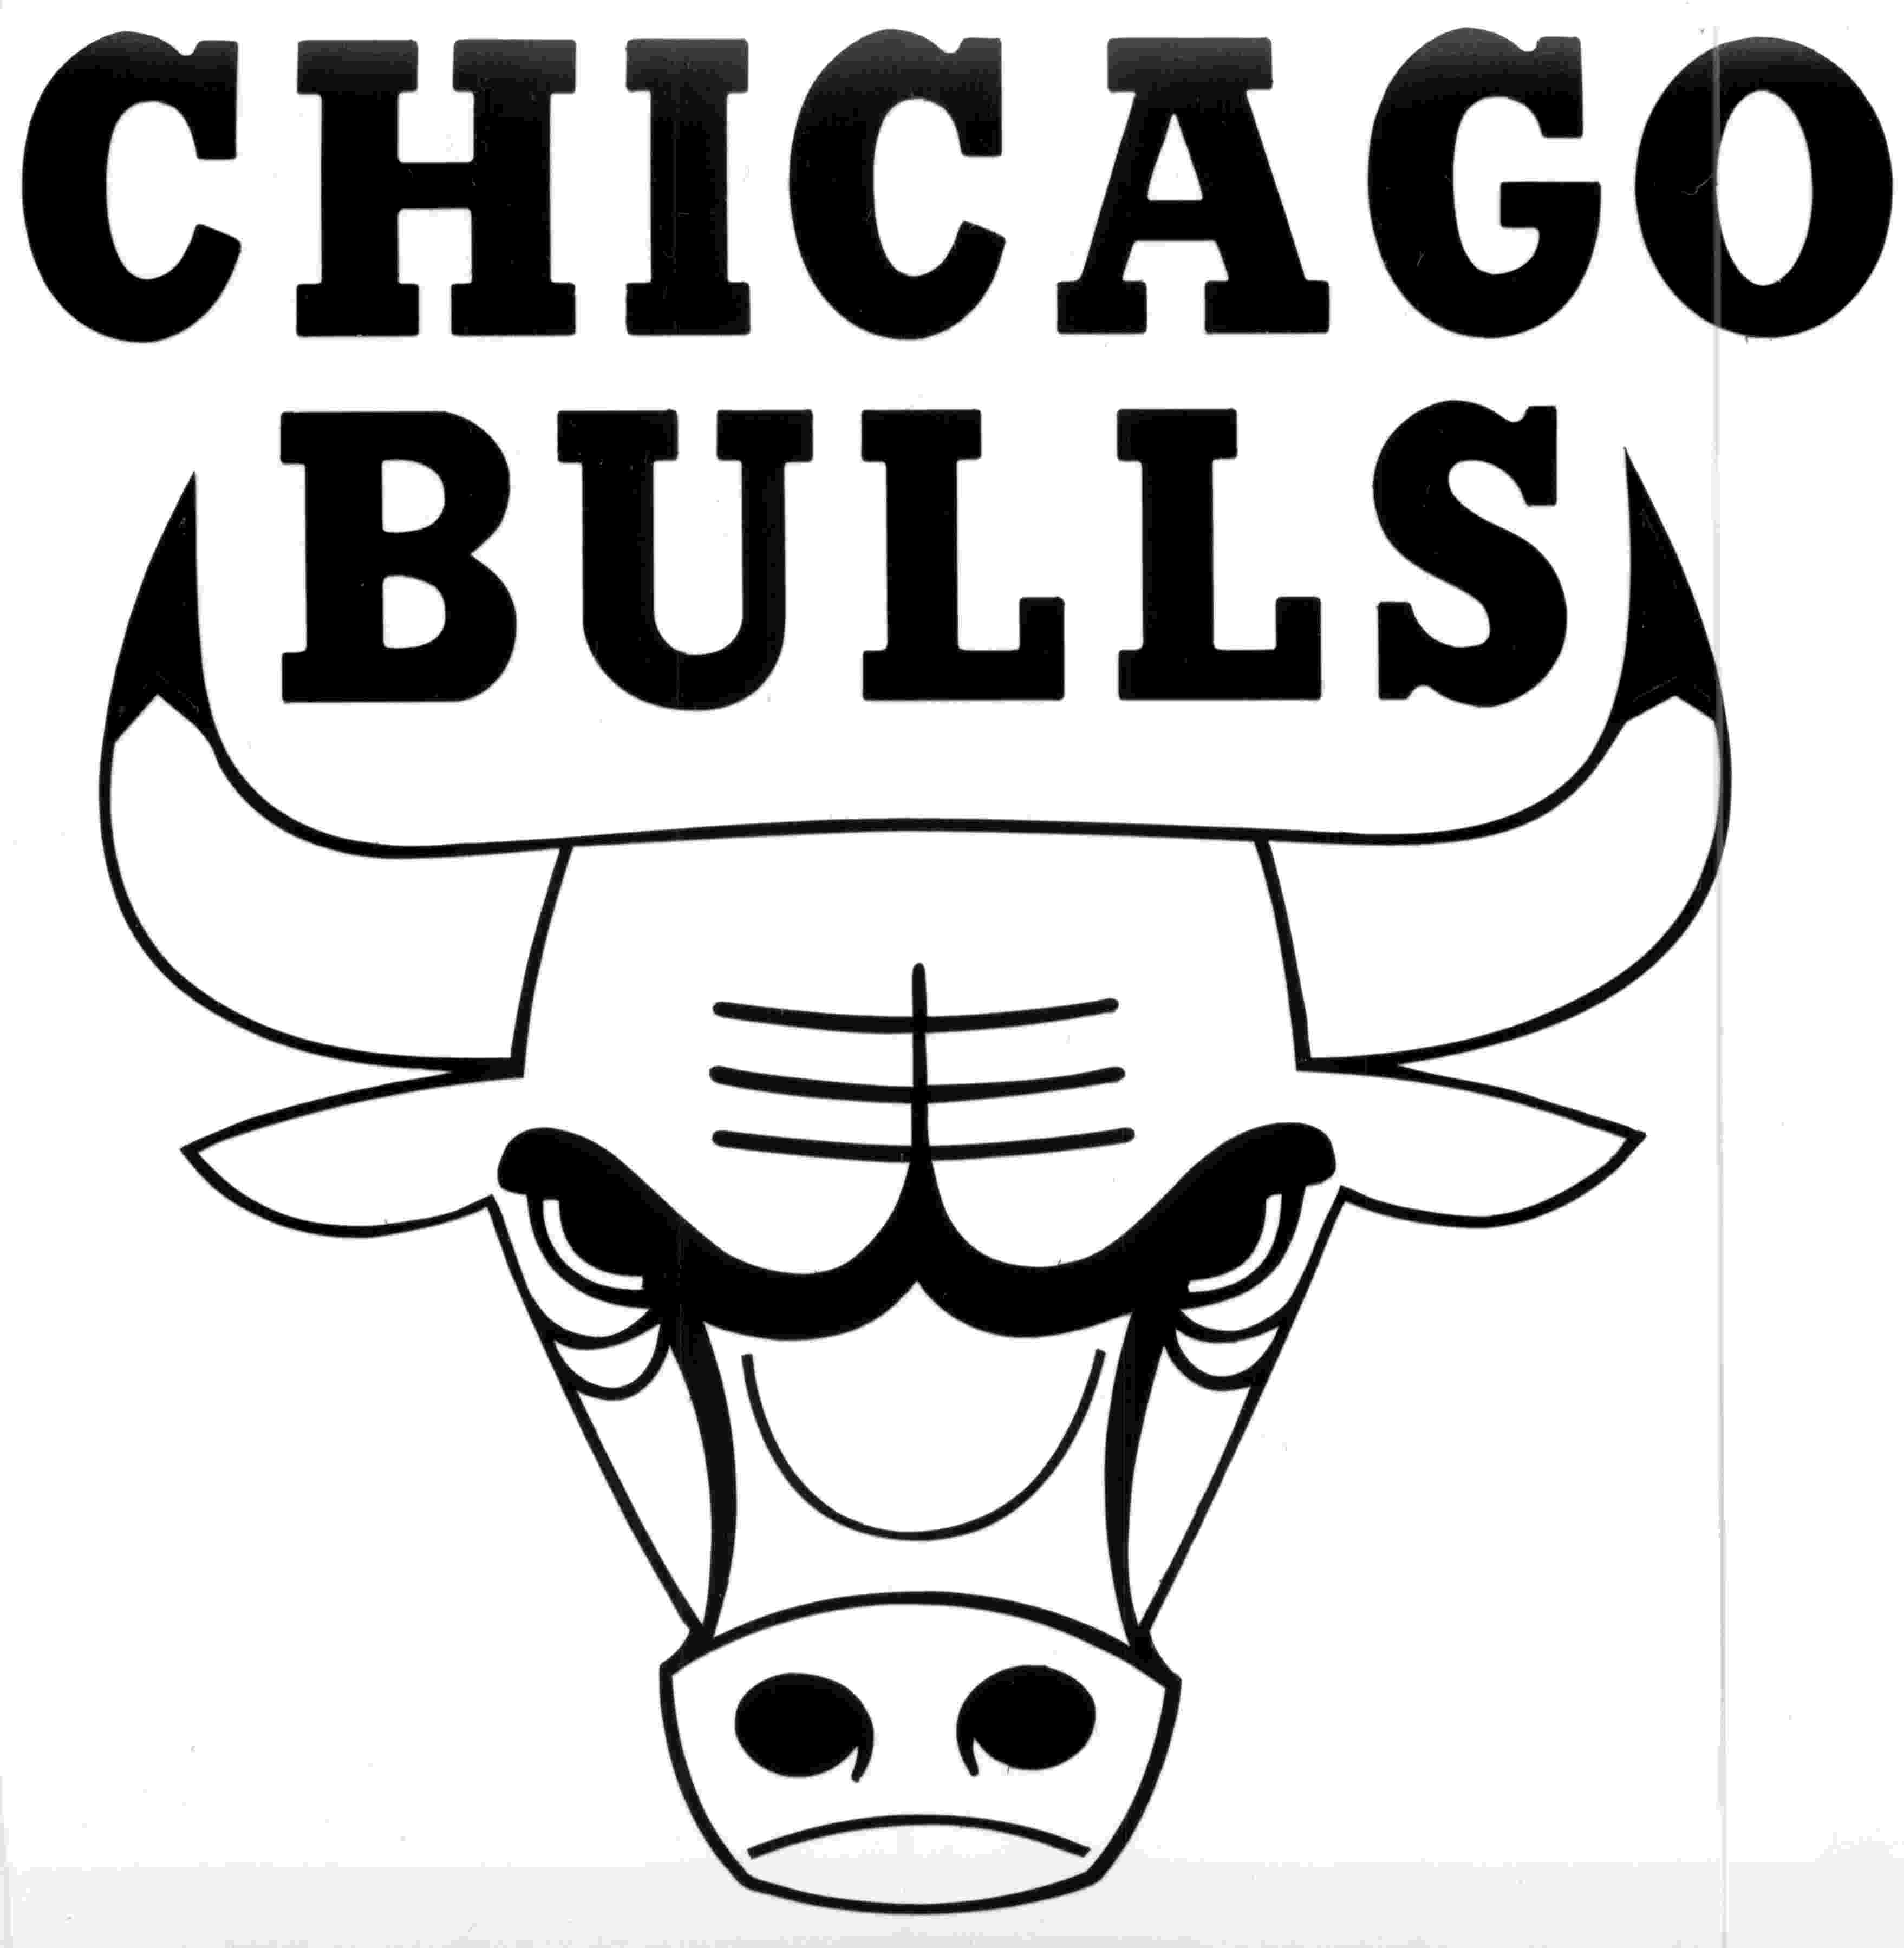 chicago bulls coloring pages chicago bulls logo black and white chicago bulls logo coloring chicago pages bulls